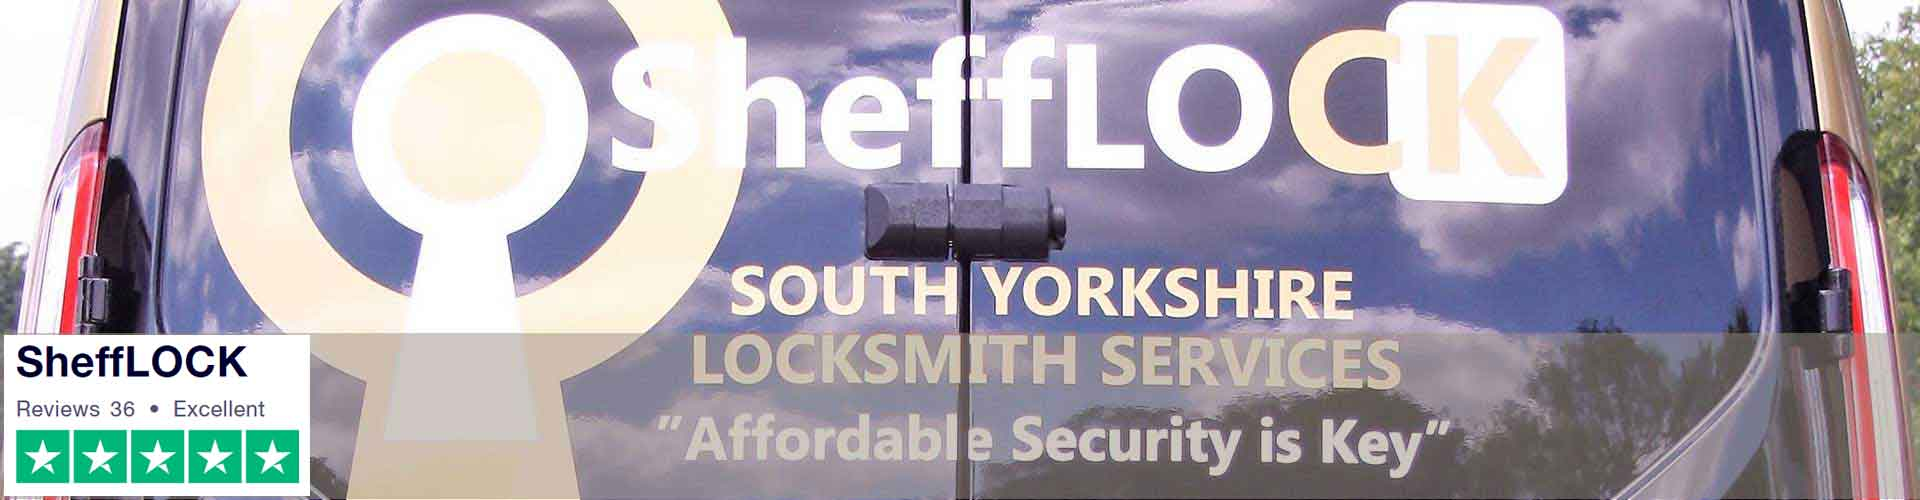 Dinnington locksmiths